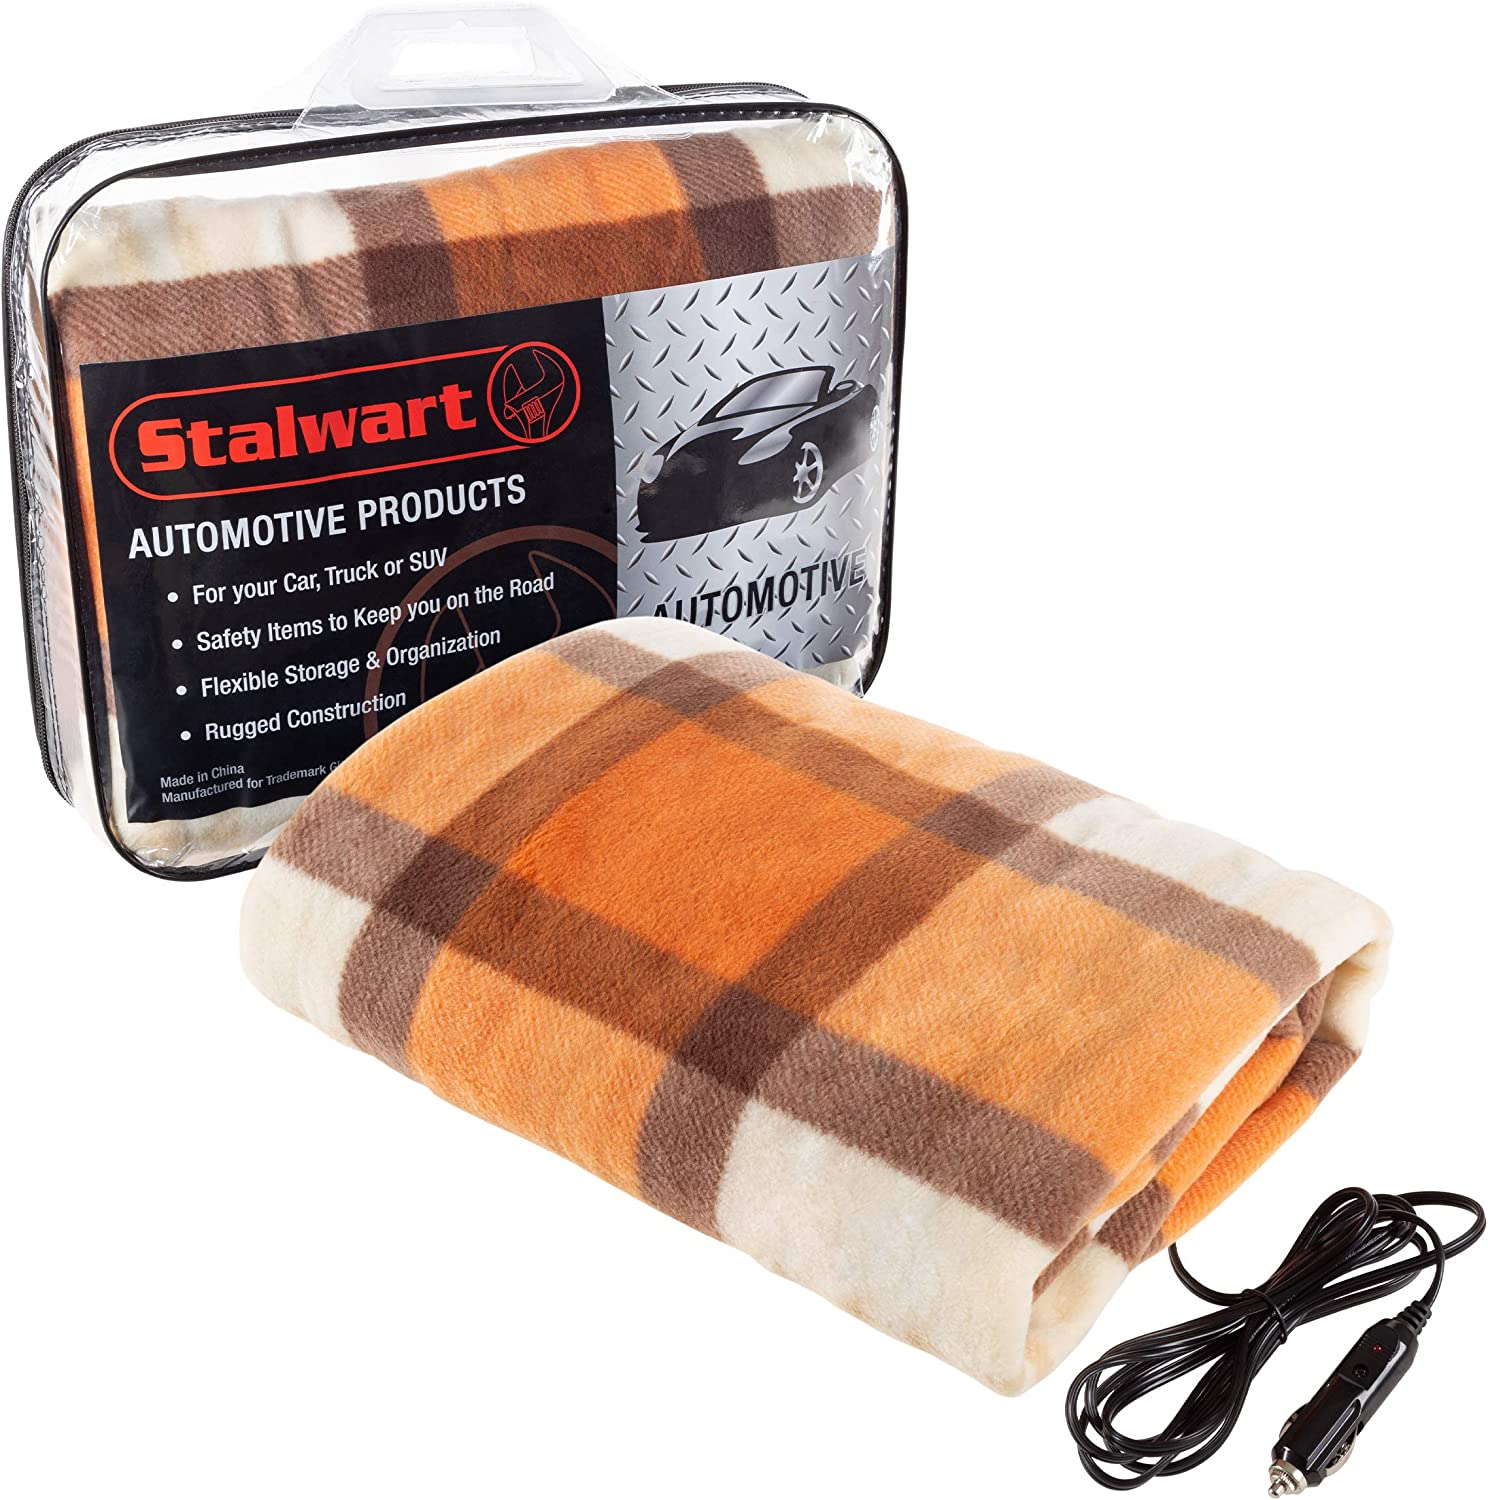 Stalwart 75-BP900 Green Electric Auto Blanket